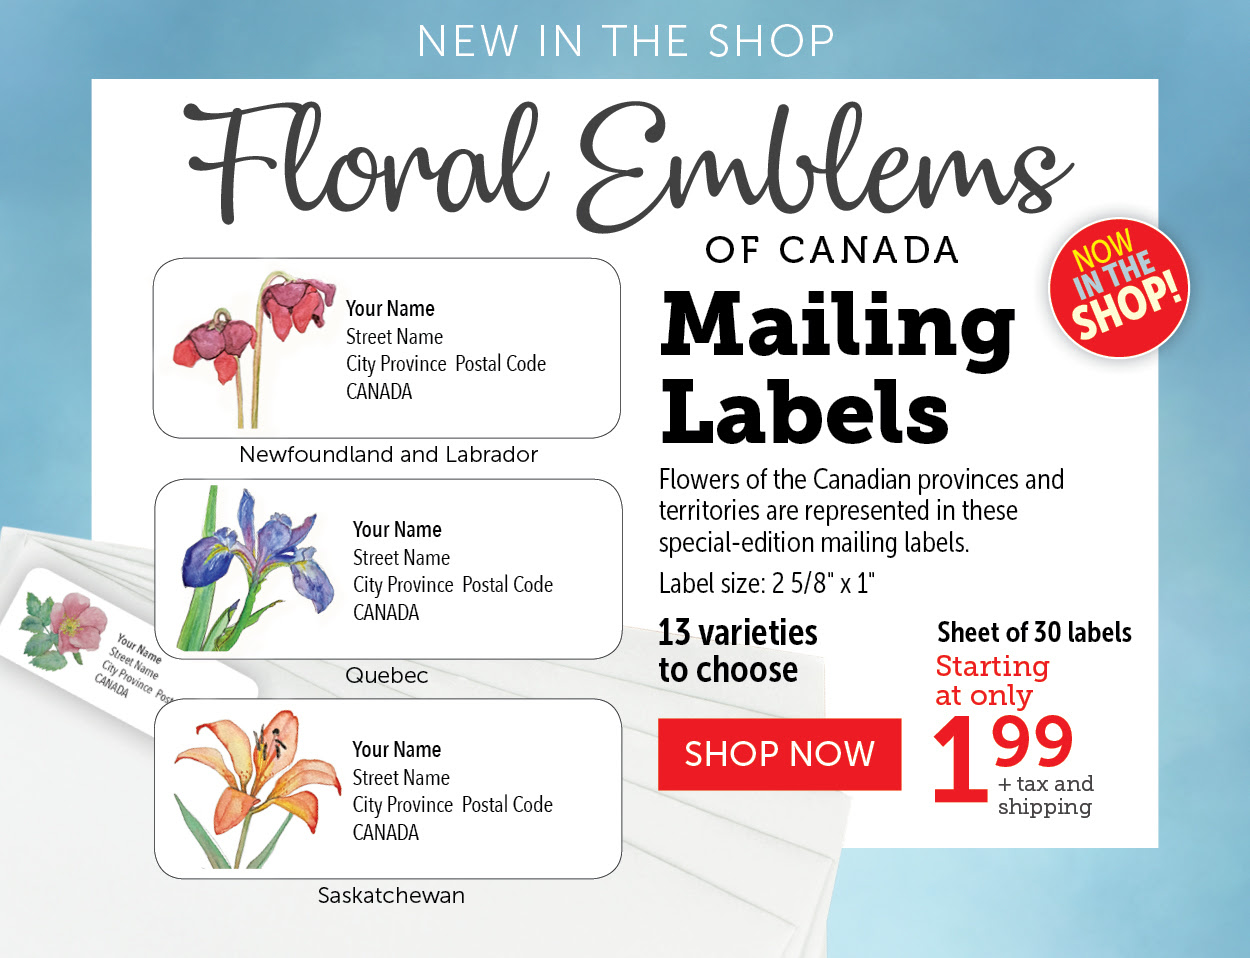 Floral Emblems of Canada Mailing Labels